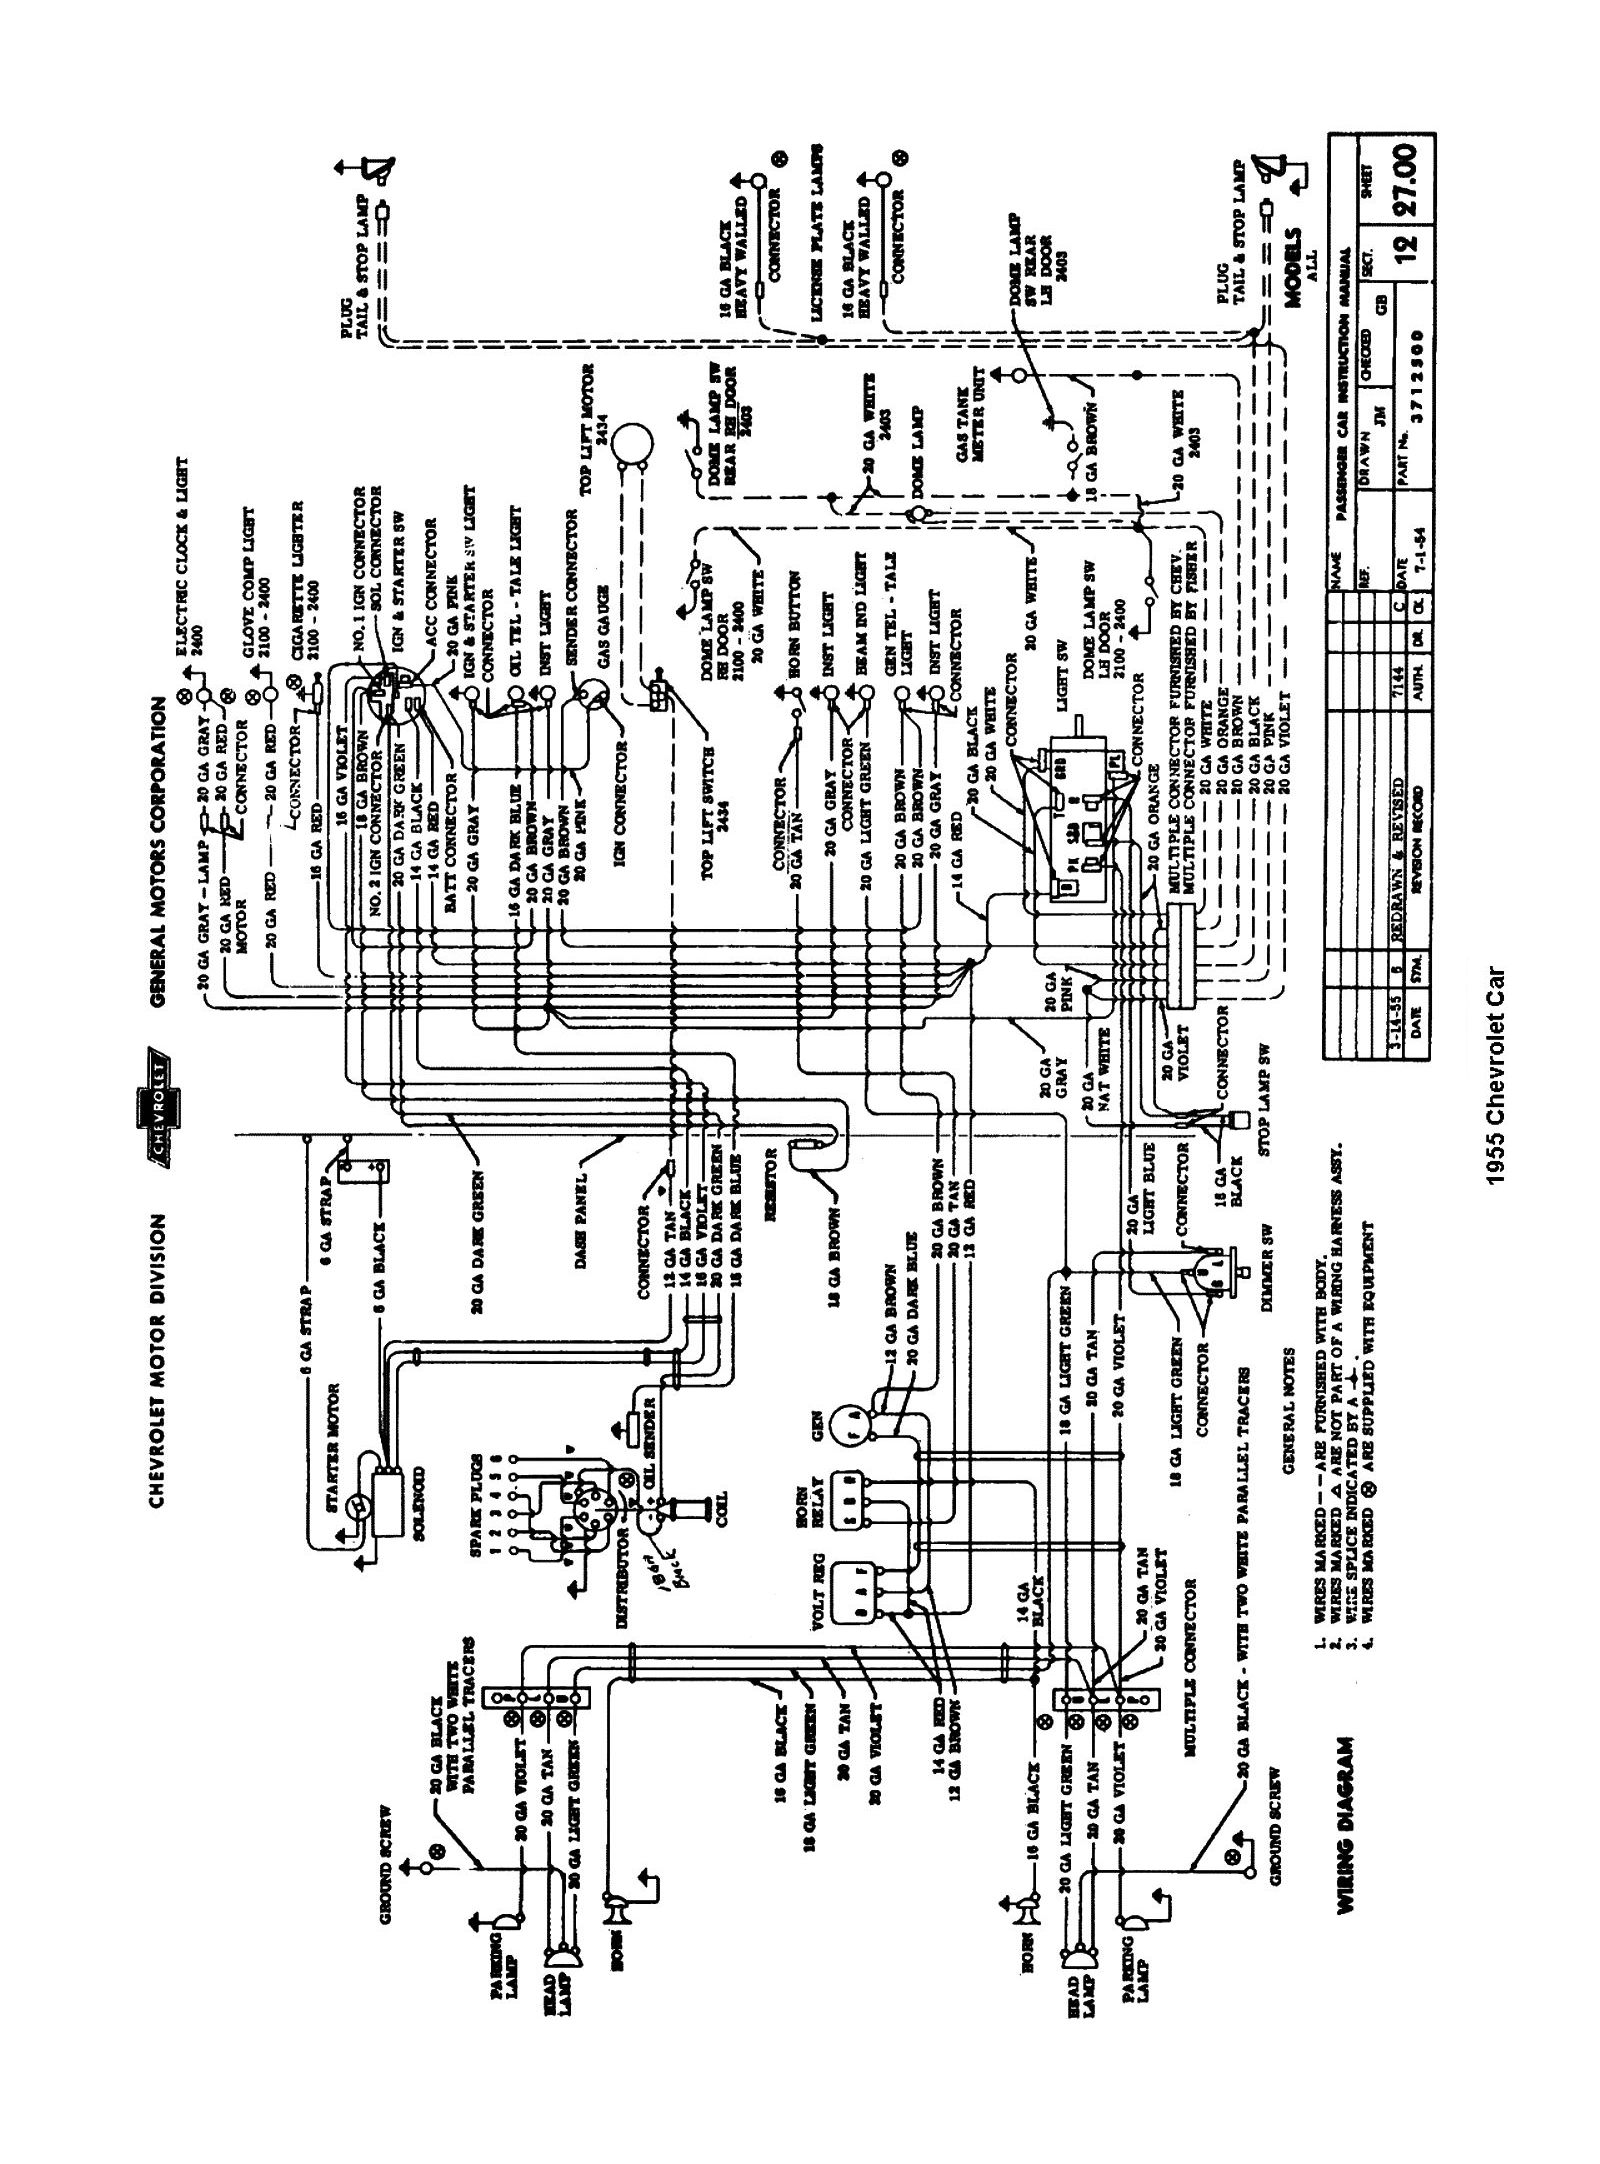 55 Chevy Steering Column Wiring Diagram Libraries Dodge For Data Schemachevy Diagrams